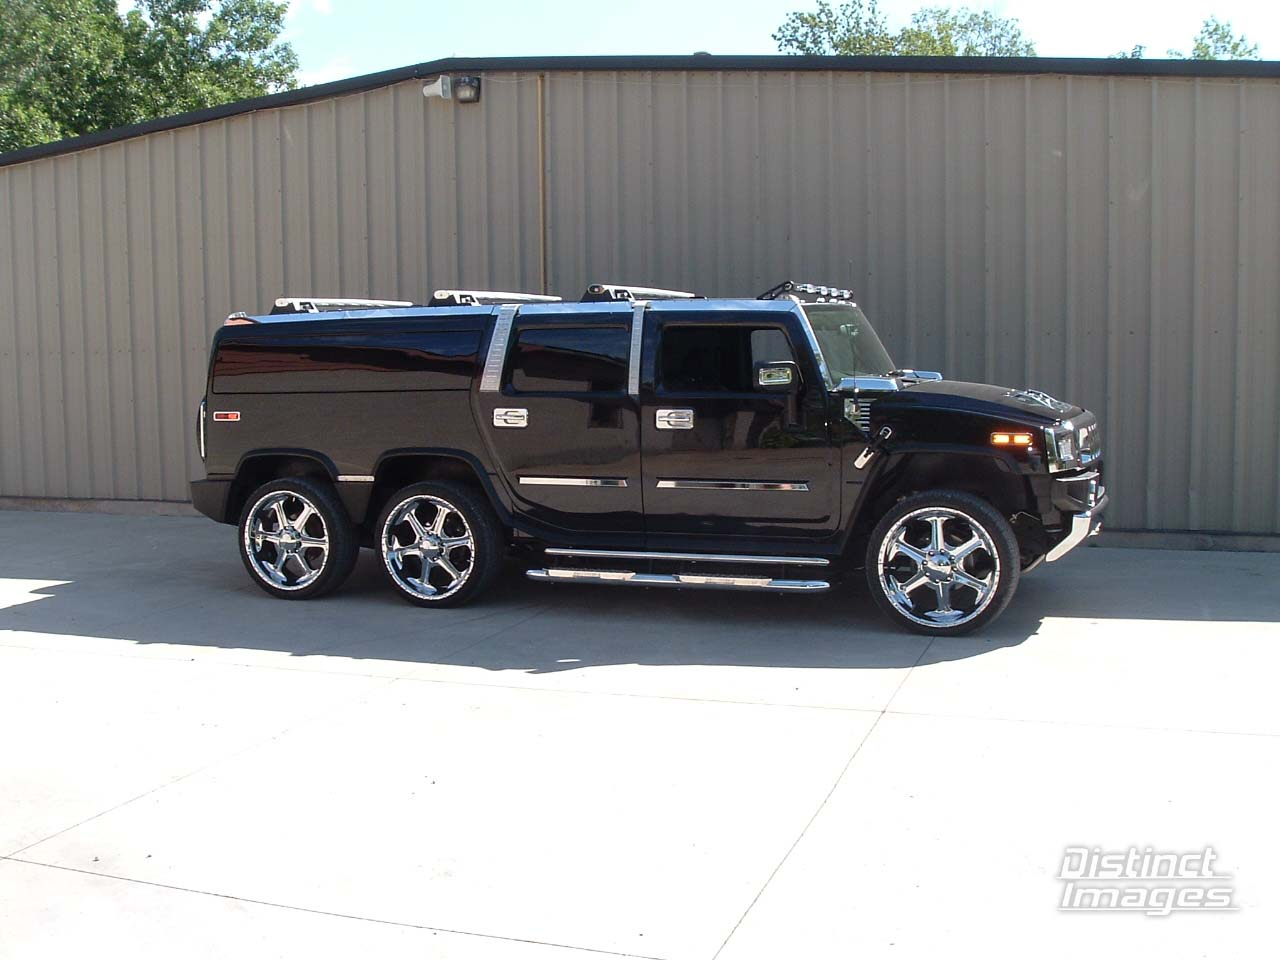 Palm Bay Ford >> HUMMER H6 ~ autosmr